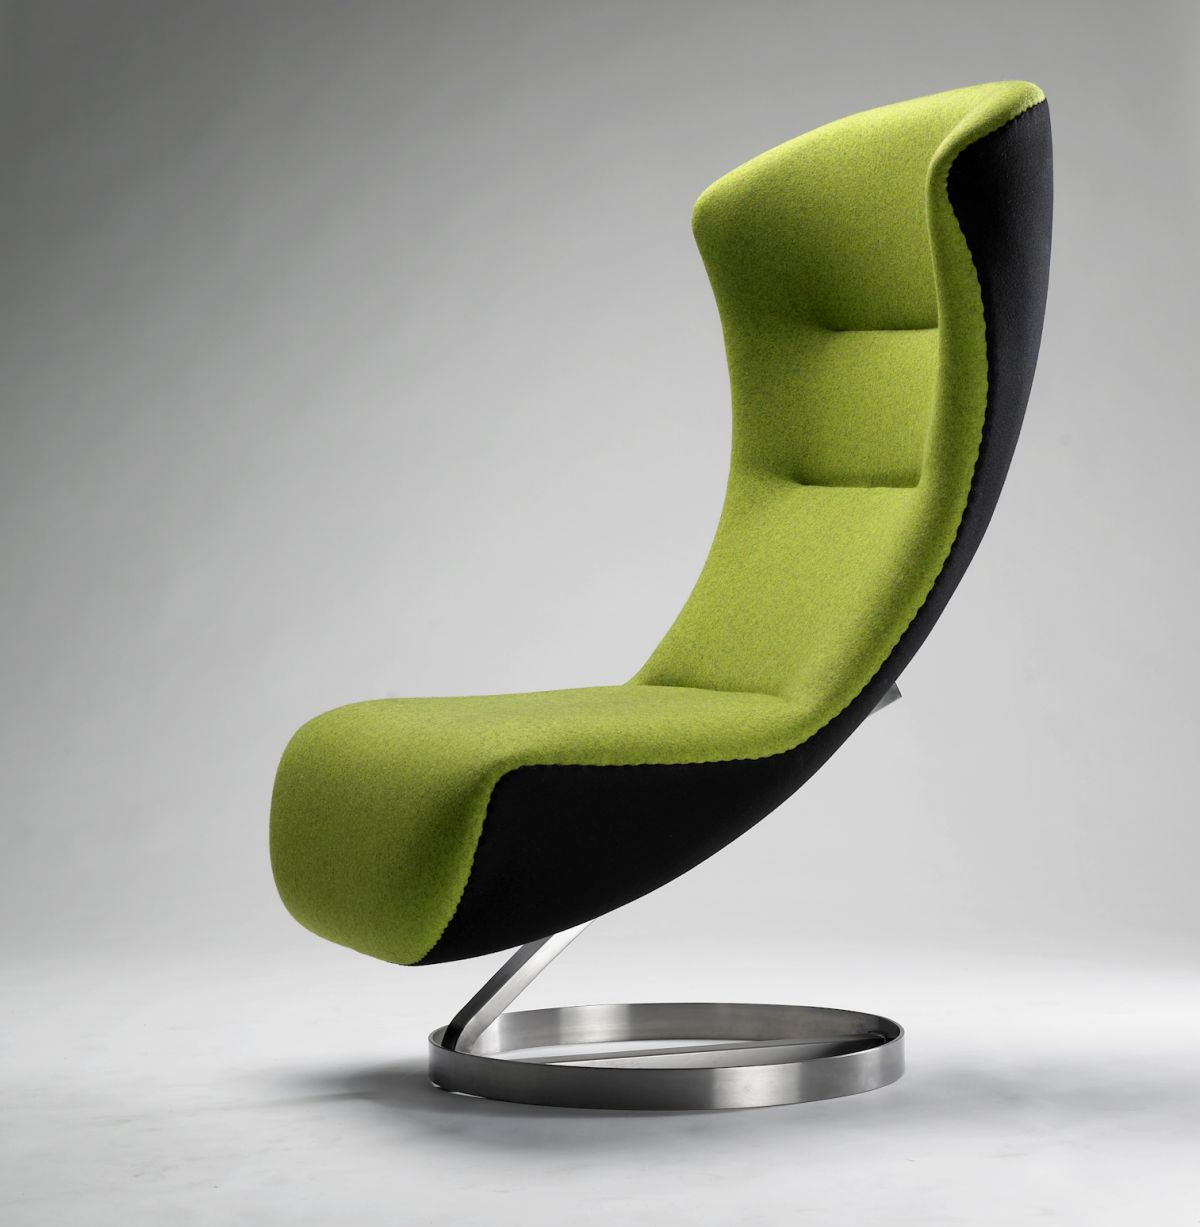 Cool Lounge Chairs Lounge Chair By Nico Kläber Cool Living Pinterest